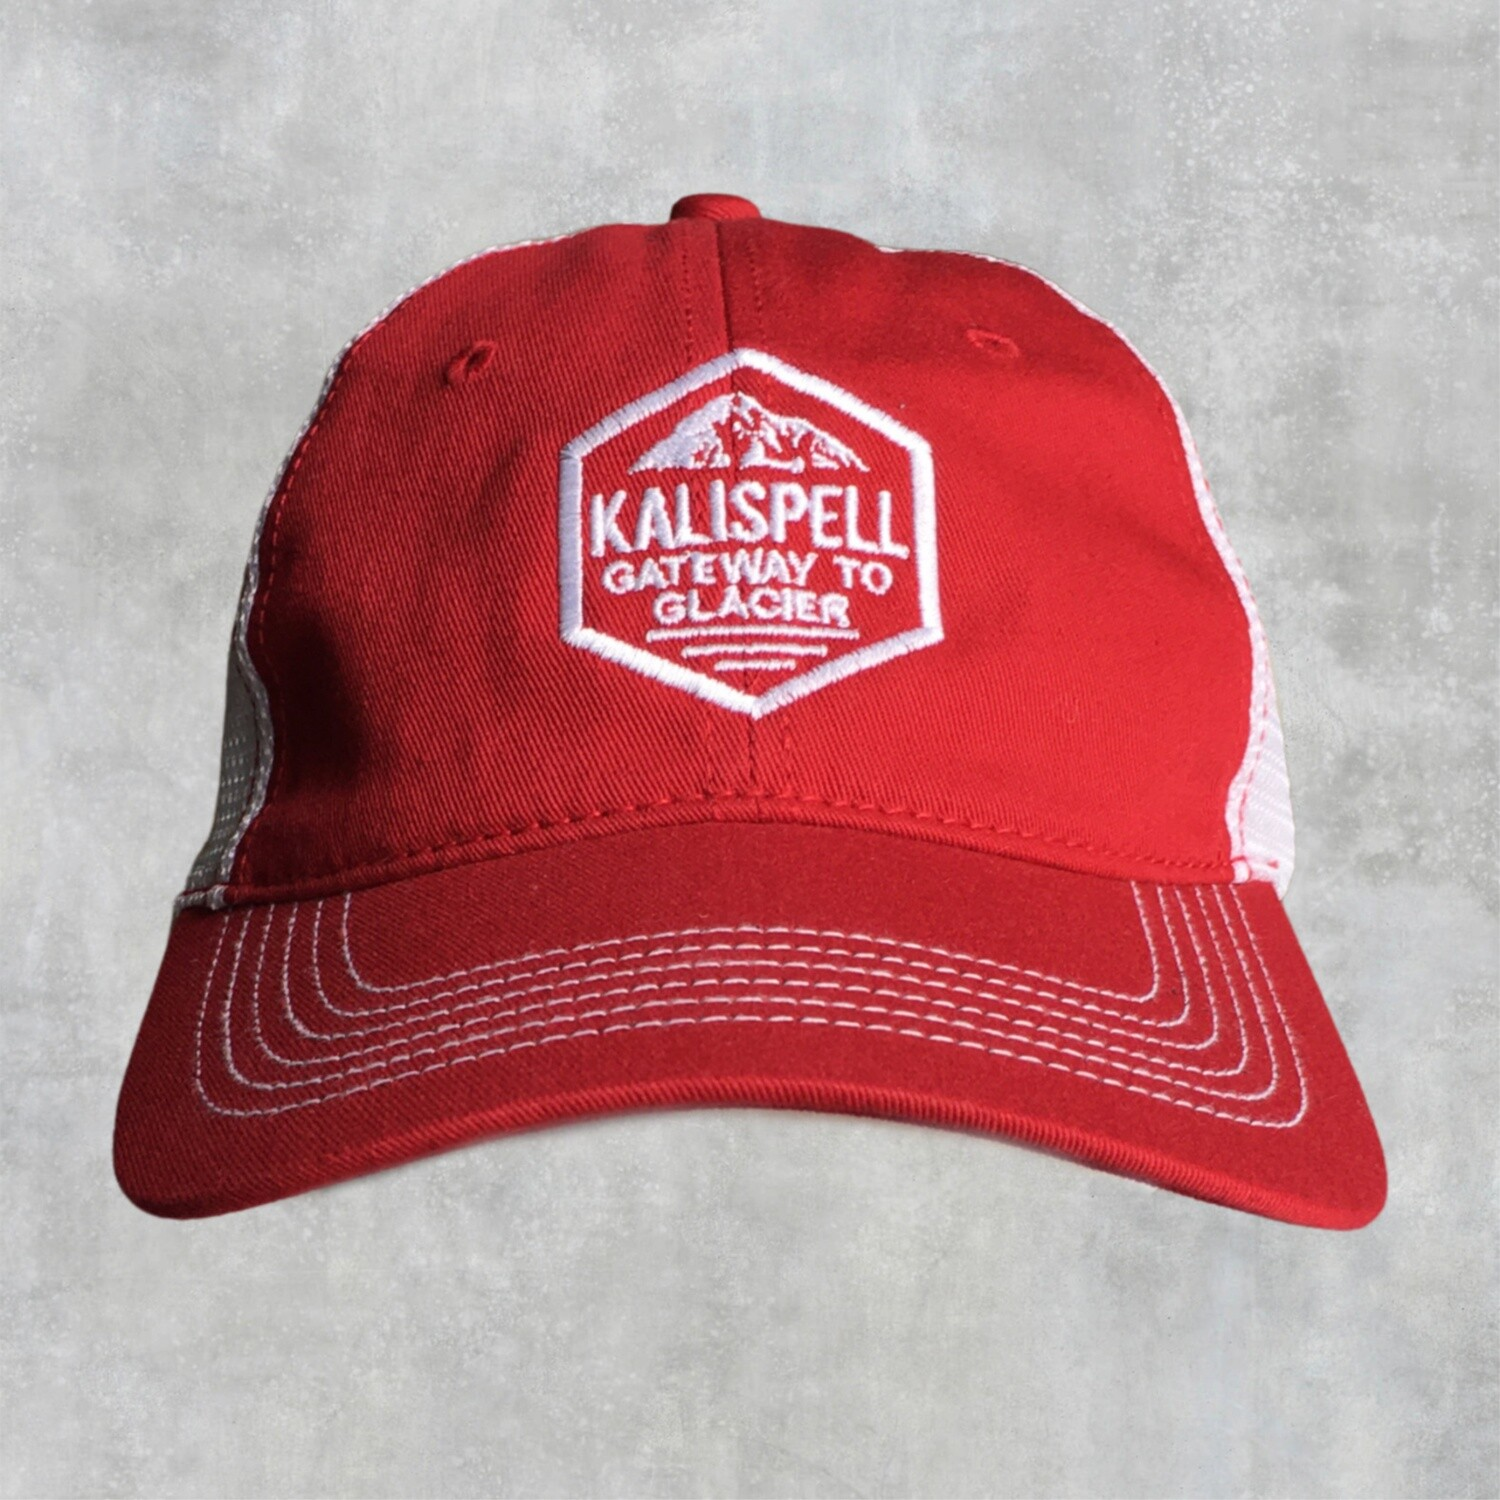 Kalispell Red/White Collapsible Hat